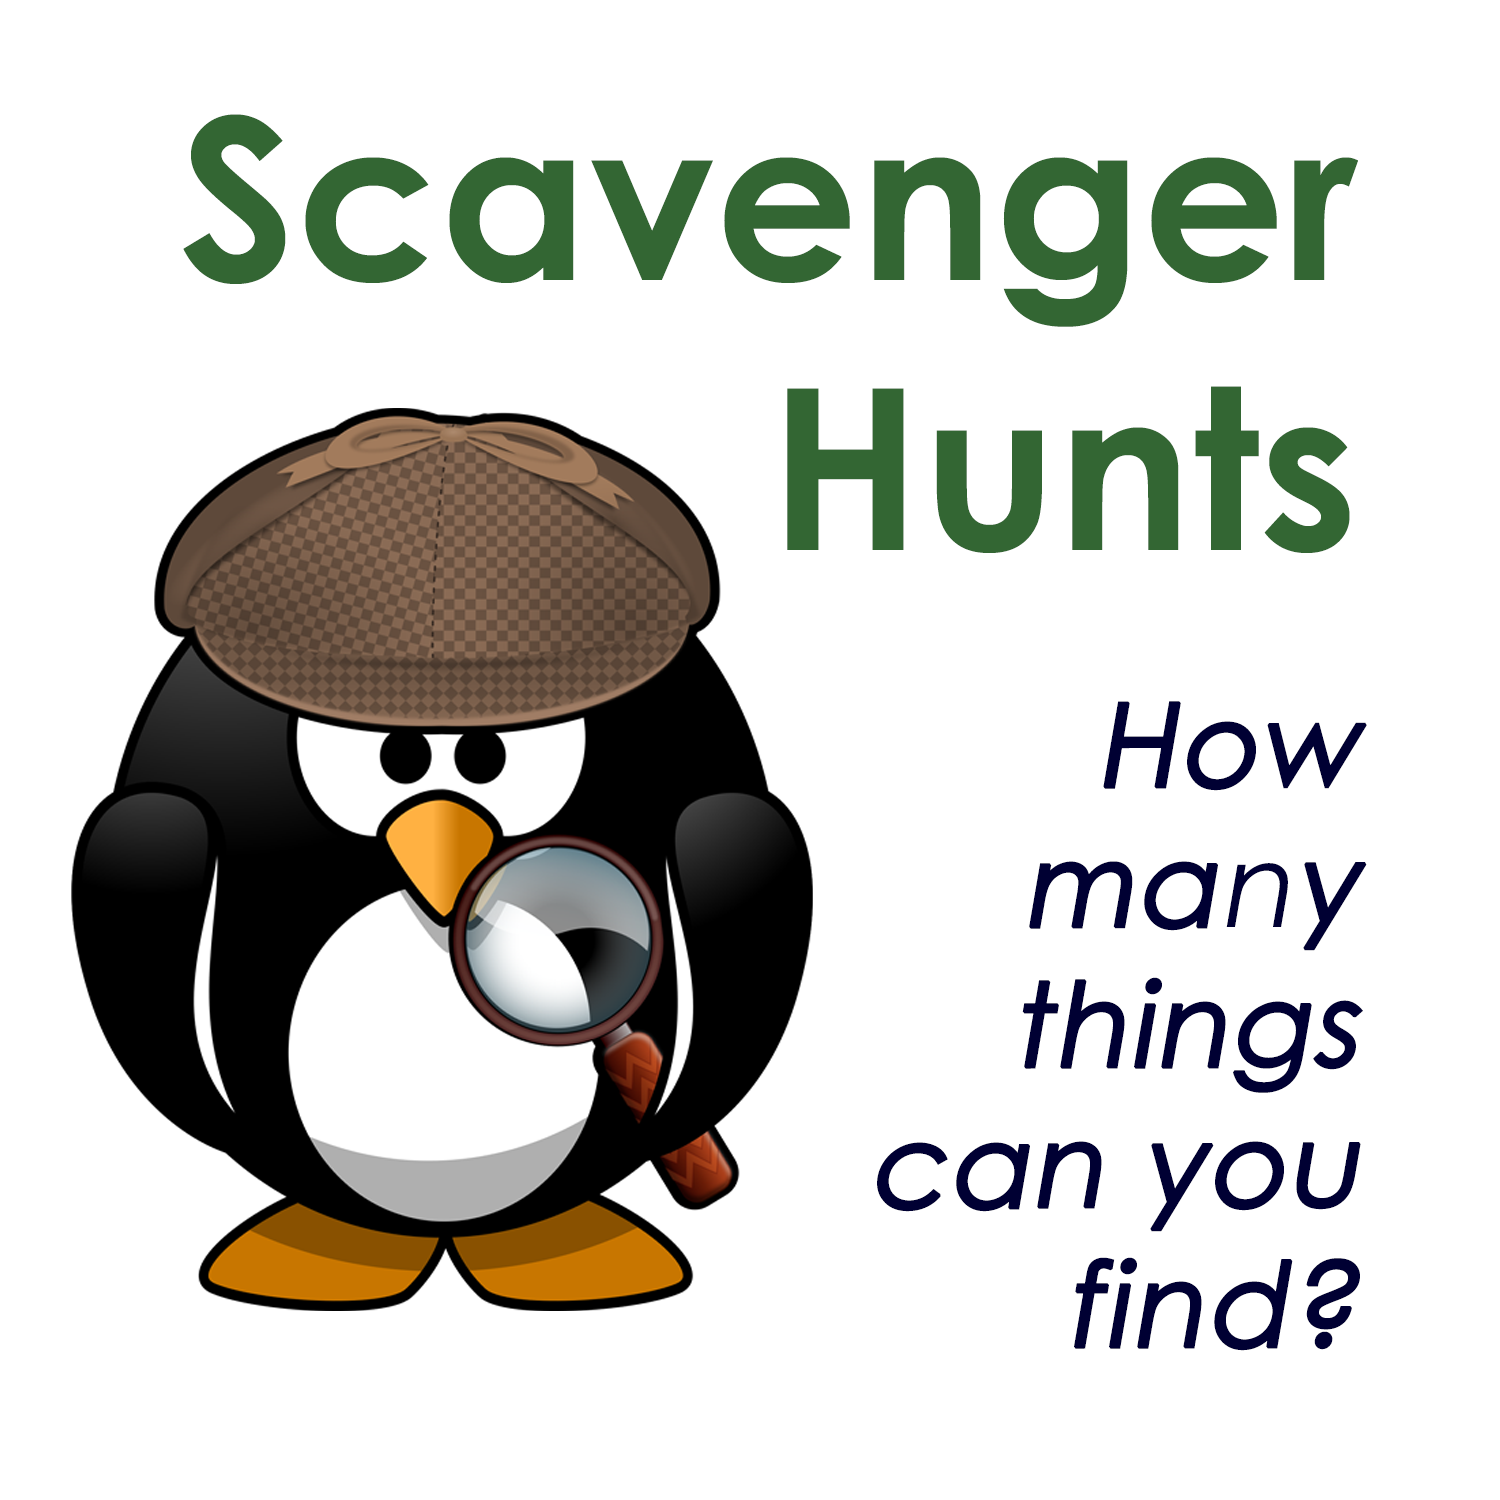 Detective penguin Scavenger Hunt image with link to Activities page